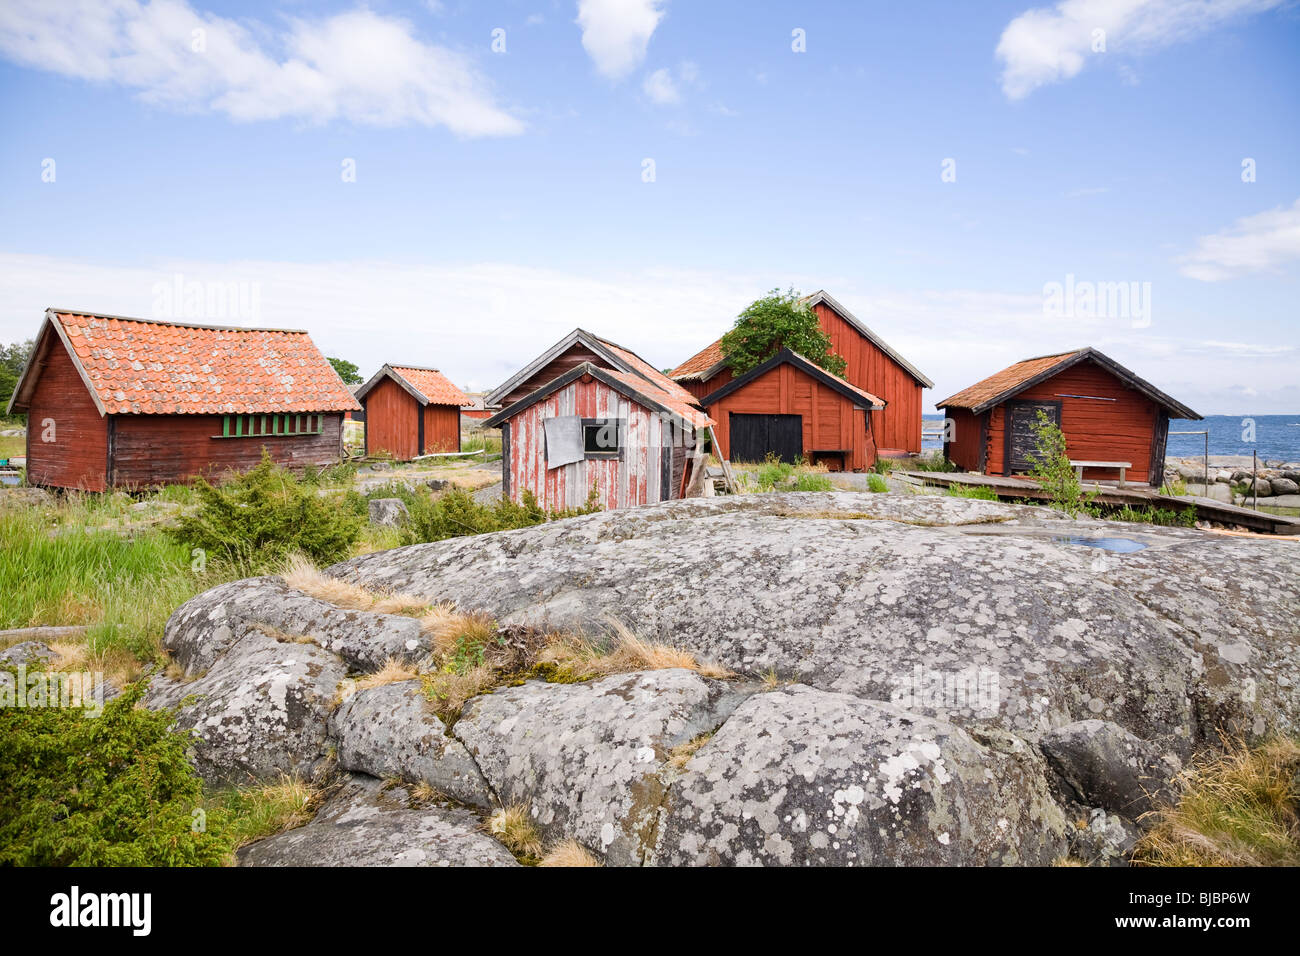 "Traditional red painted fisherman's huts on the island of Svartloga""in the ""Archipelago of Stockholm"" Sweden. Stock Photo"